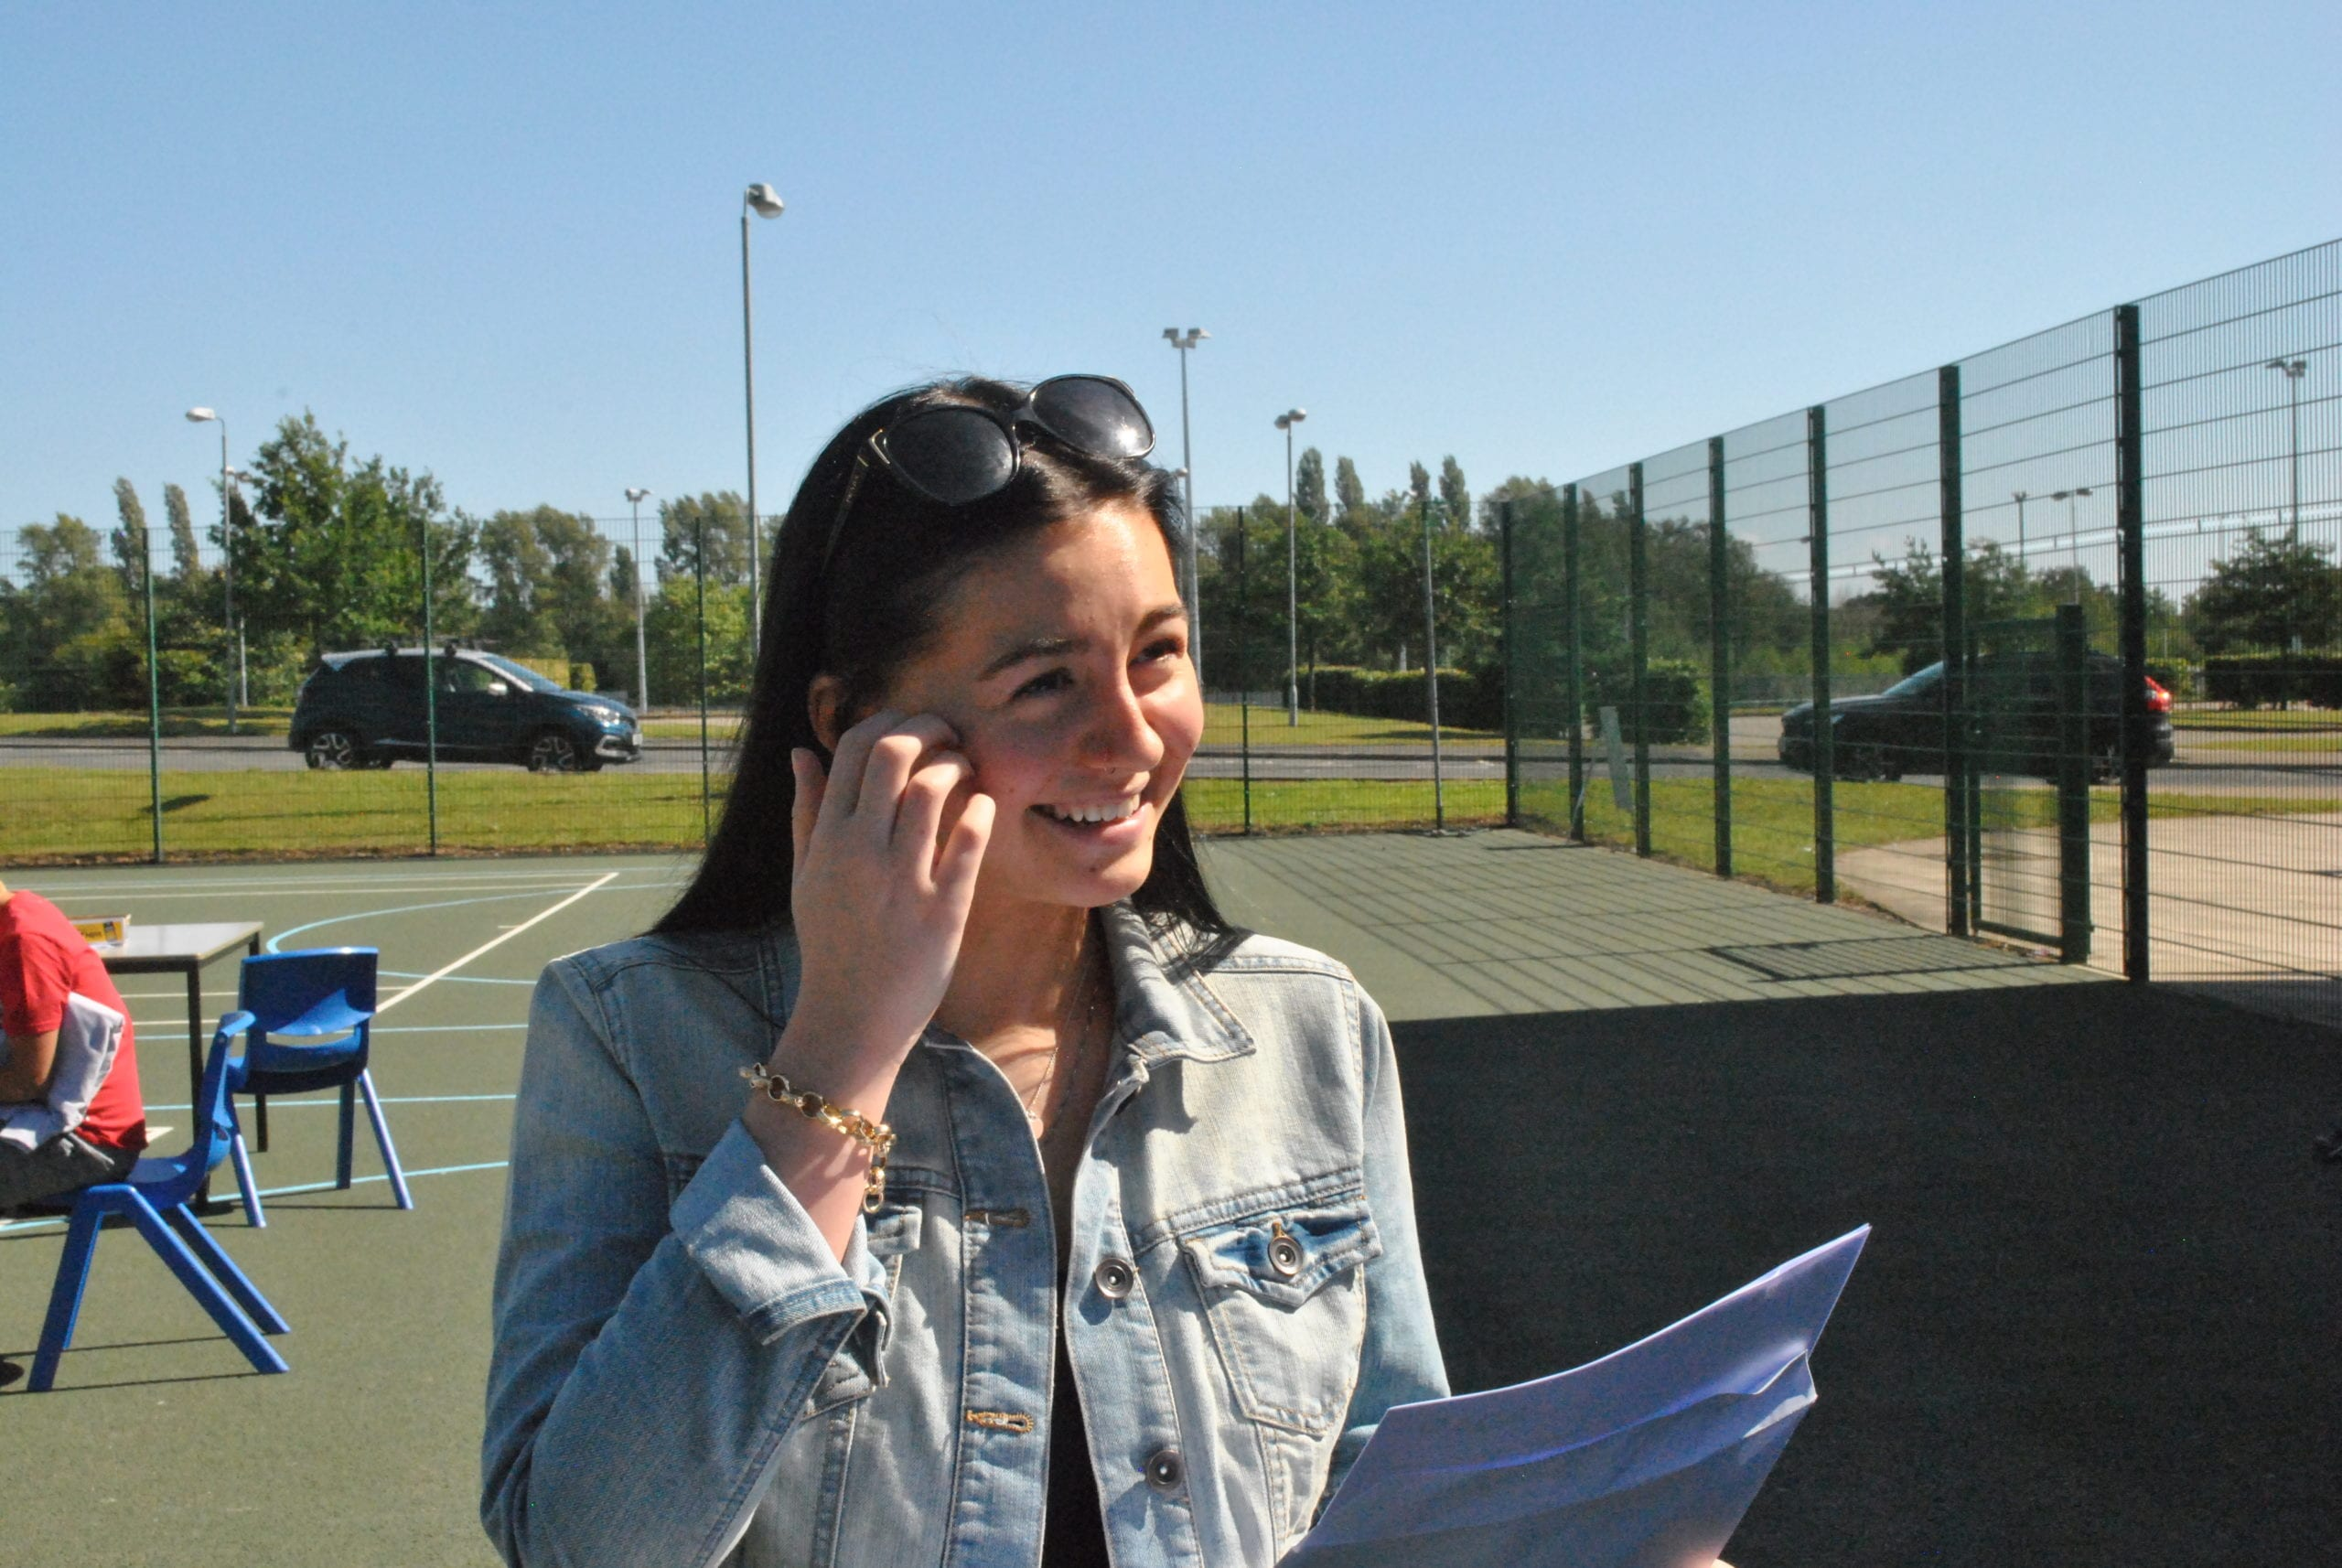 GCSE success: Another great year for Retford Oaks Academy